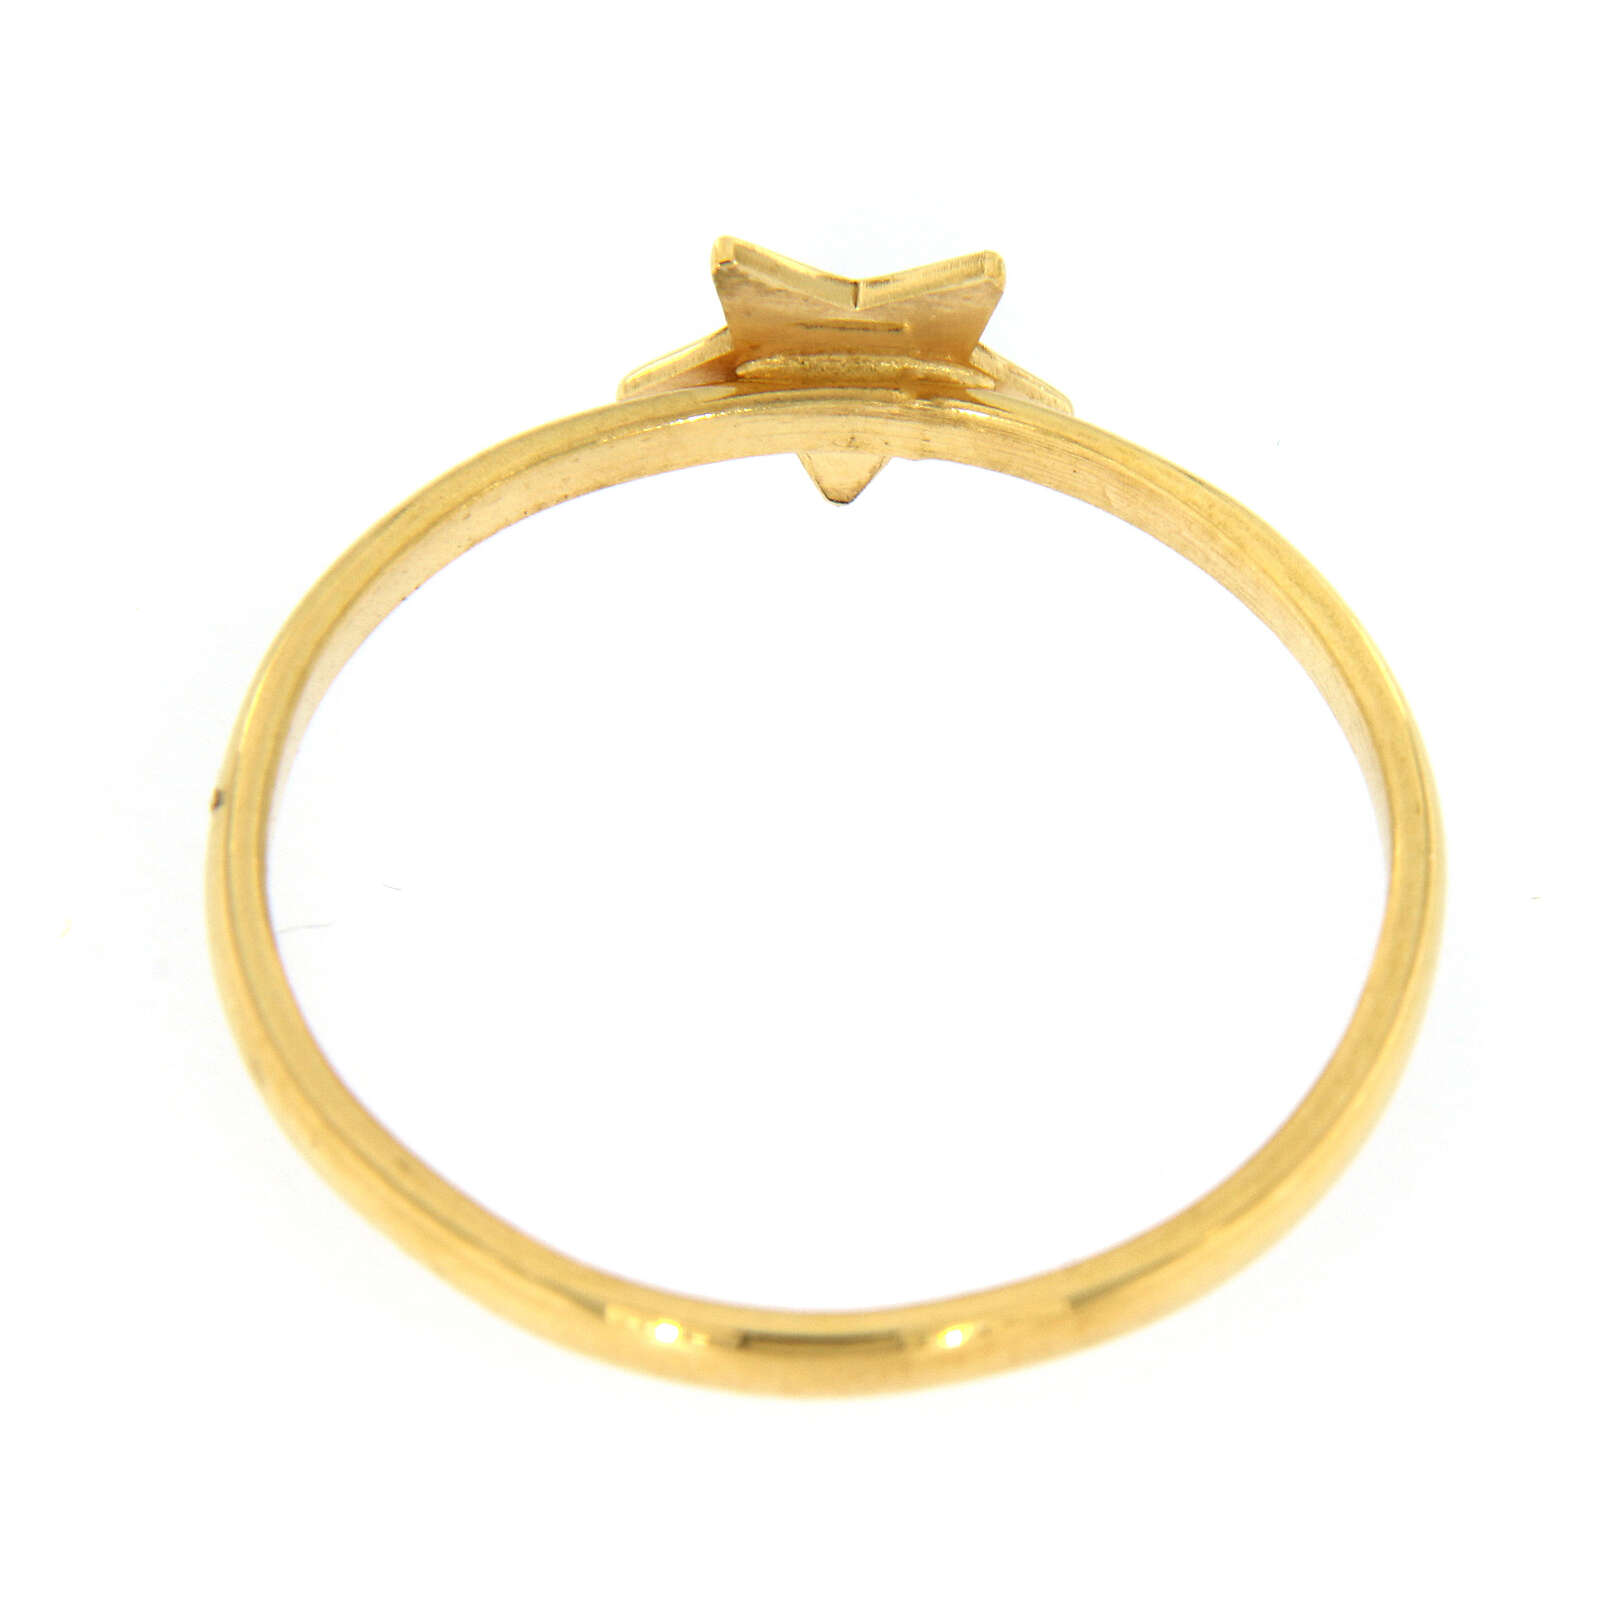 AMEN ring star of 925 gold plated silver 3